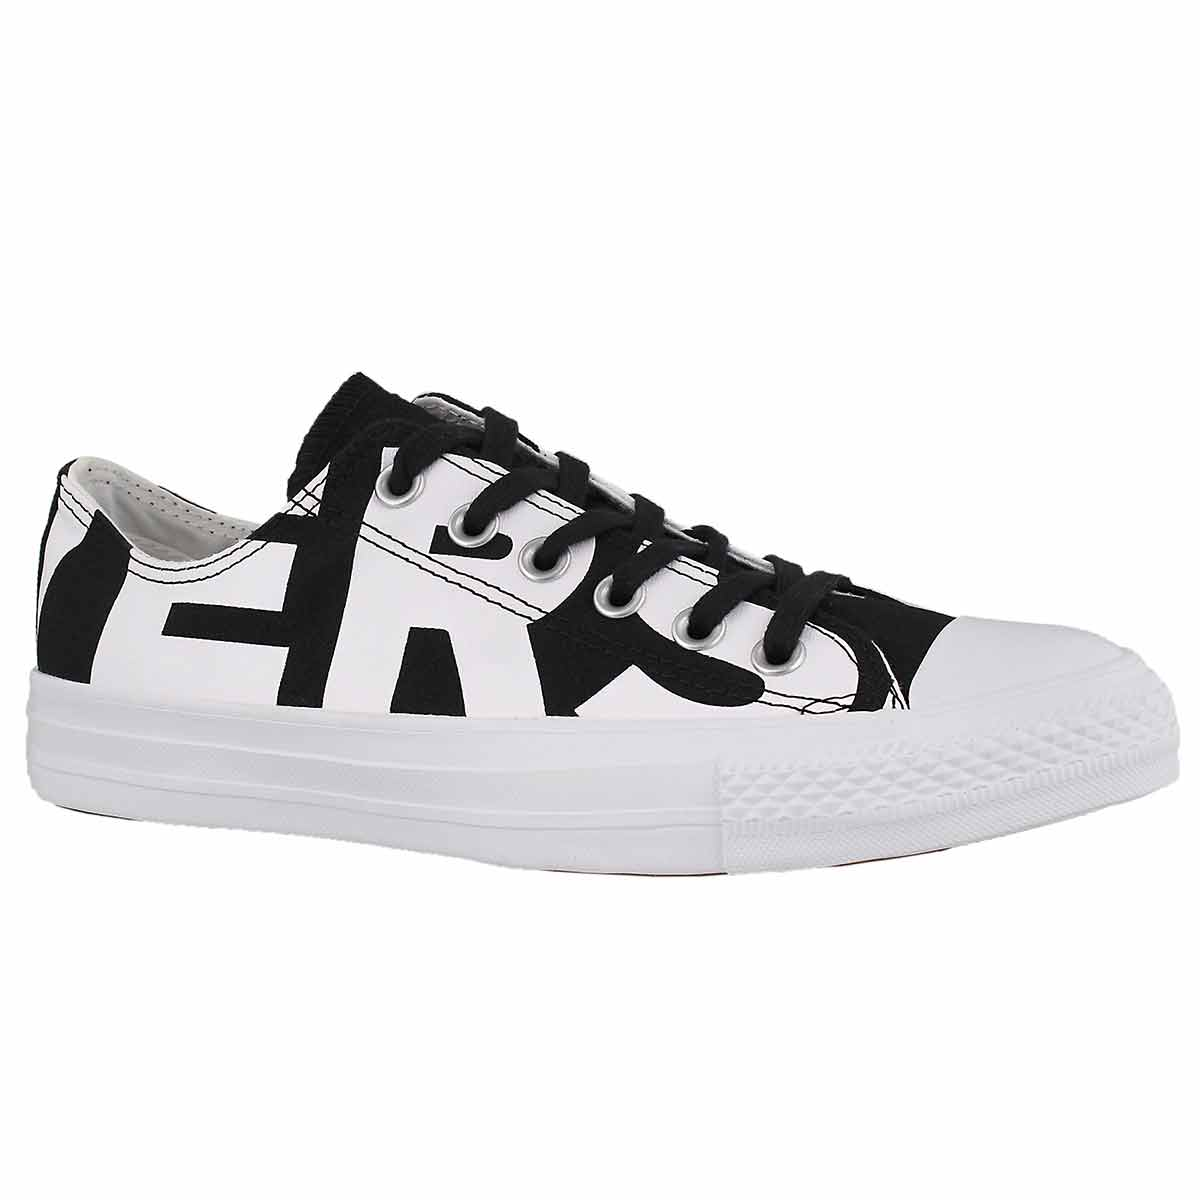 Women's CT ALL STAR WORDMARK blk/wht sneakers